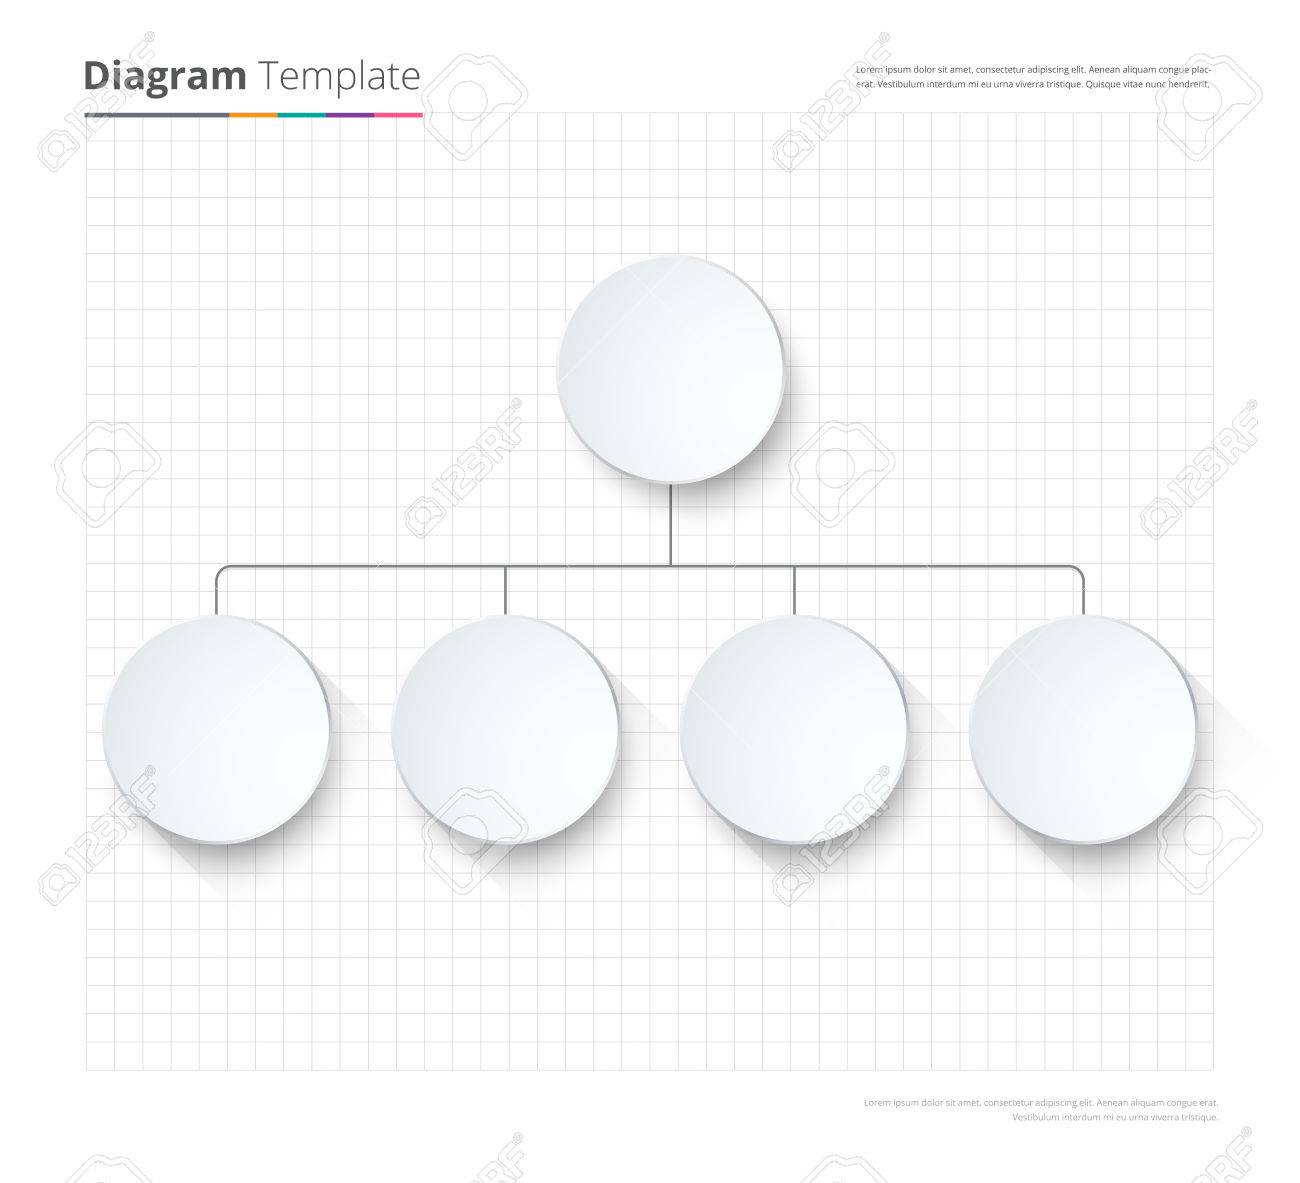 Diagram Template Organization Chart Template Flow Template Royalty Free Cliparts Vectors And Stock Illustration Image 58736288